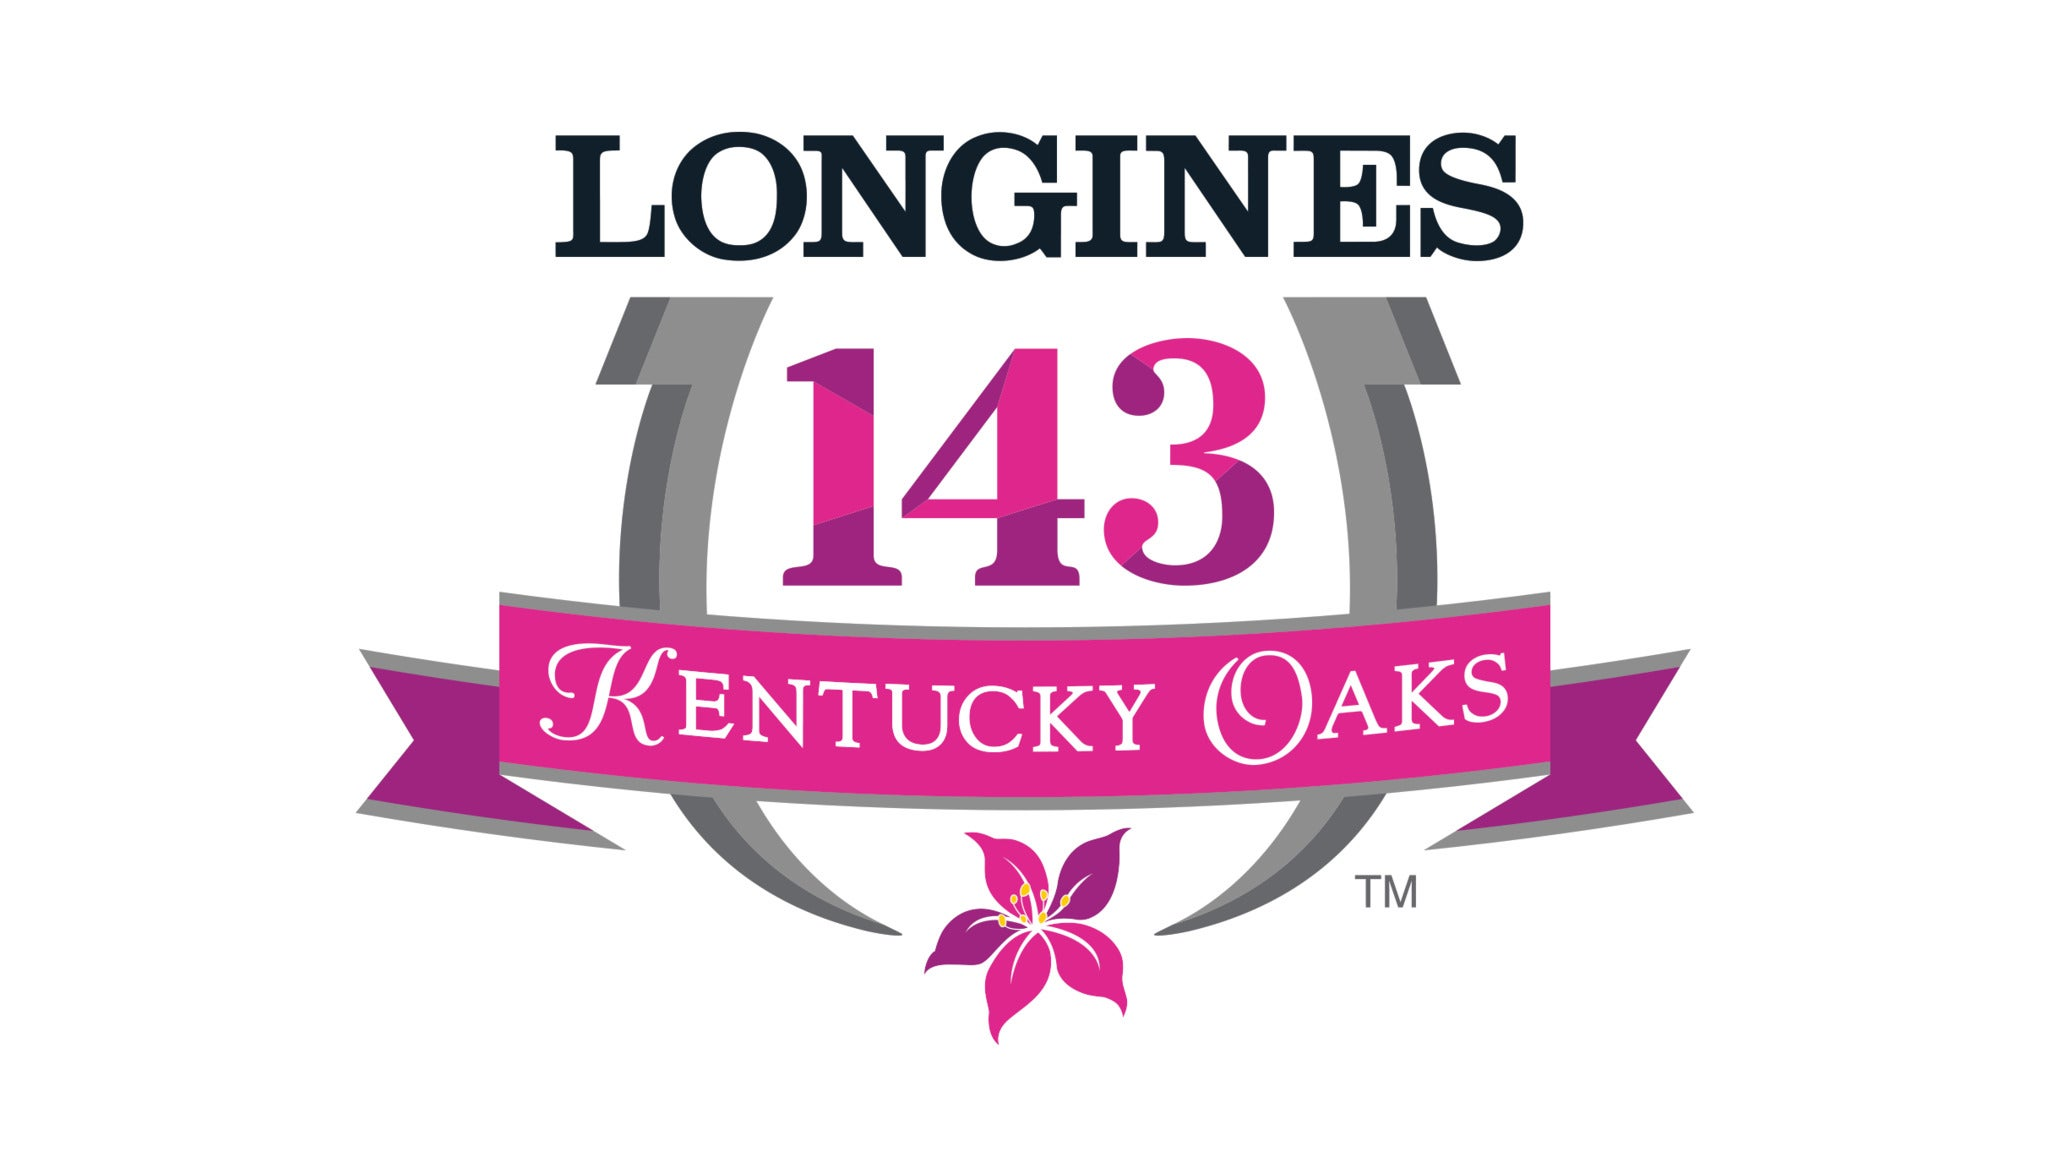 143rd Kentucky Oaks - Reserved Dining at Churchill Downs